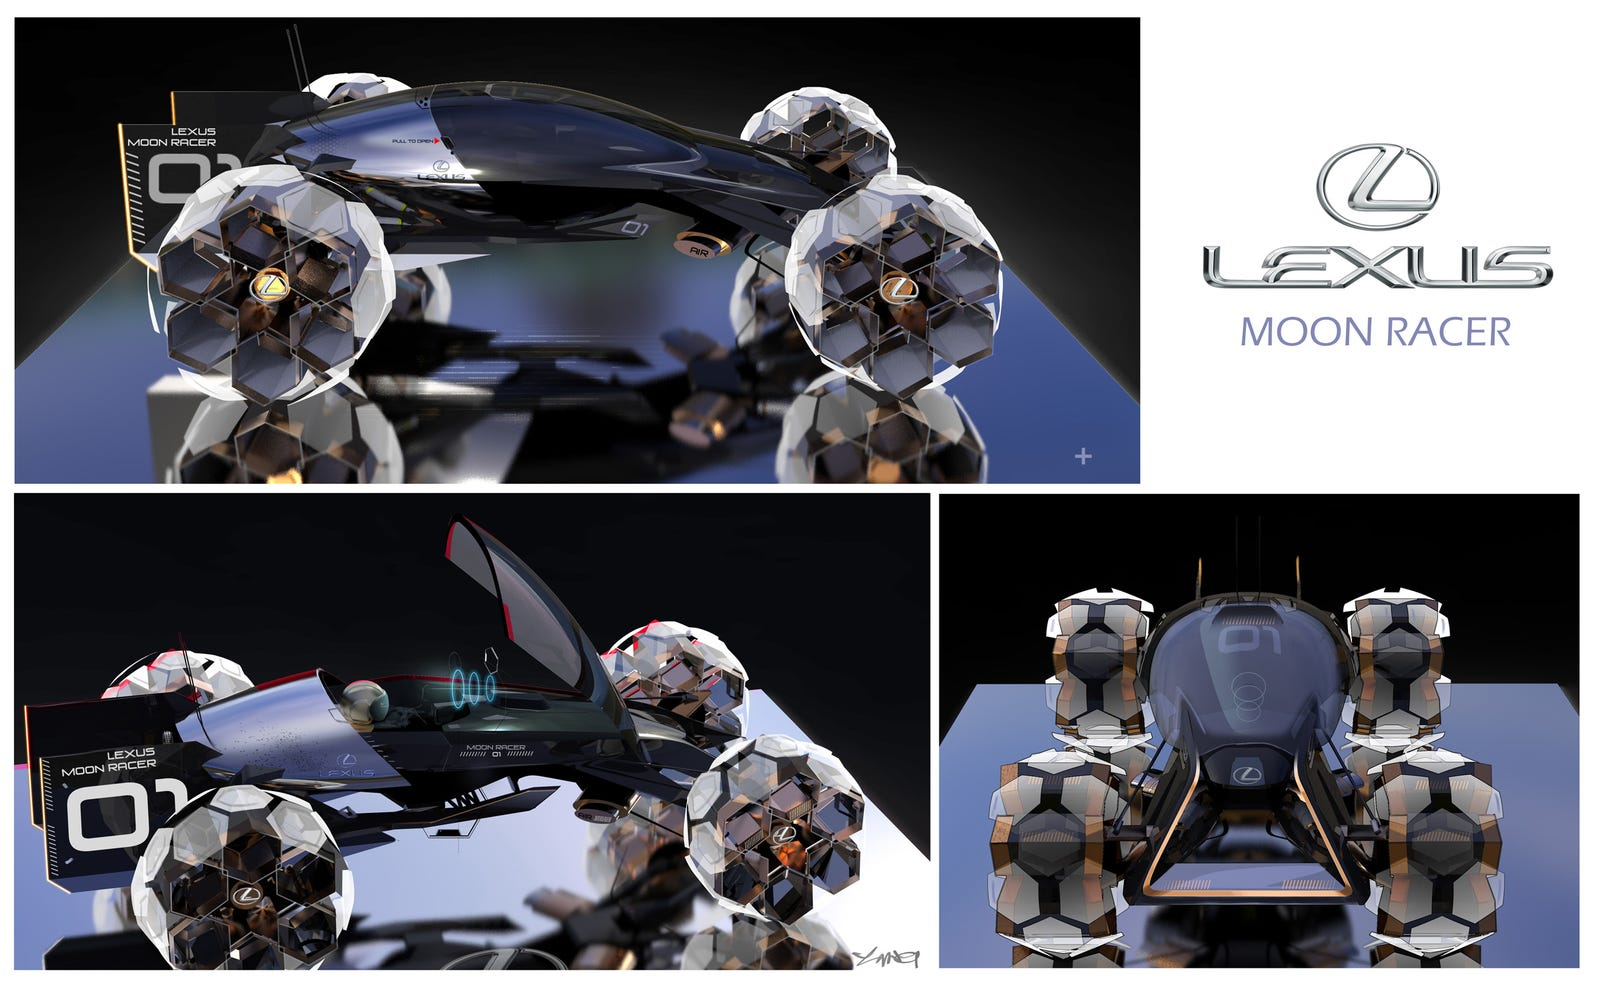 The Lexus Moon Racer is dedicated to the varied peaks of the lunar surface. This recreational vehicle is made for one human who wants to enjoy the effects of the lower-gravity in an amazing spot. You can jump, climb, race, and discover the entire moon. A giant glass bubble surrounds the driver in order to emphasize the feeling of freedom.